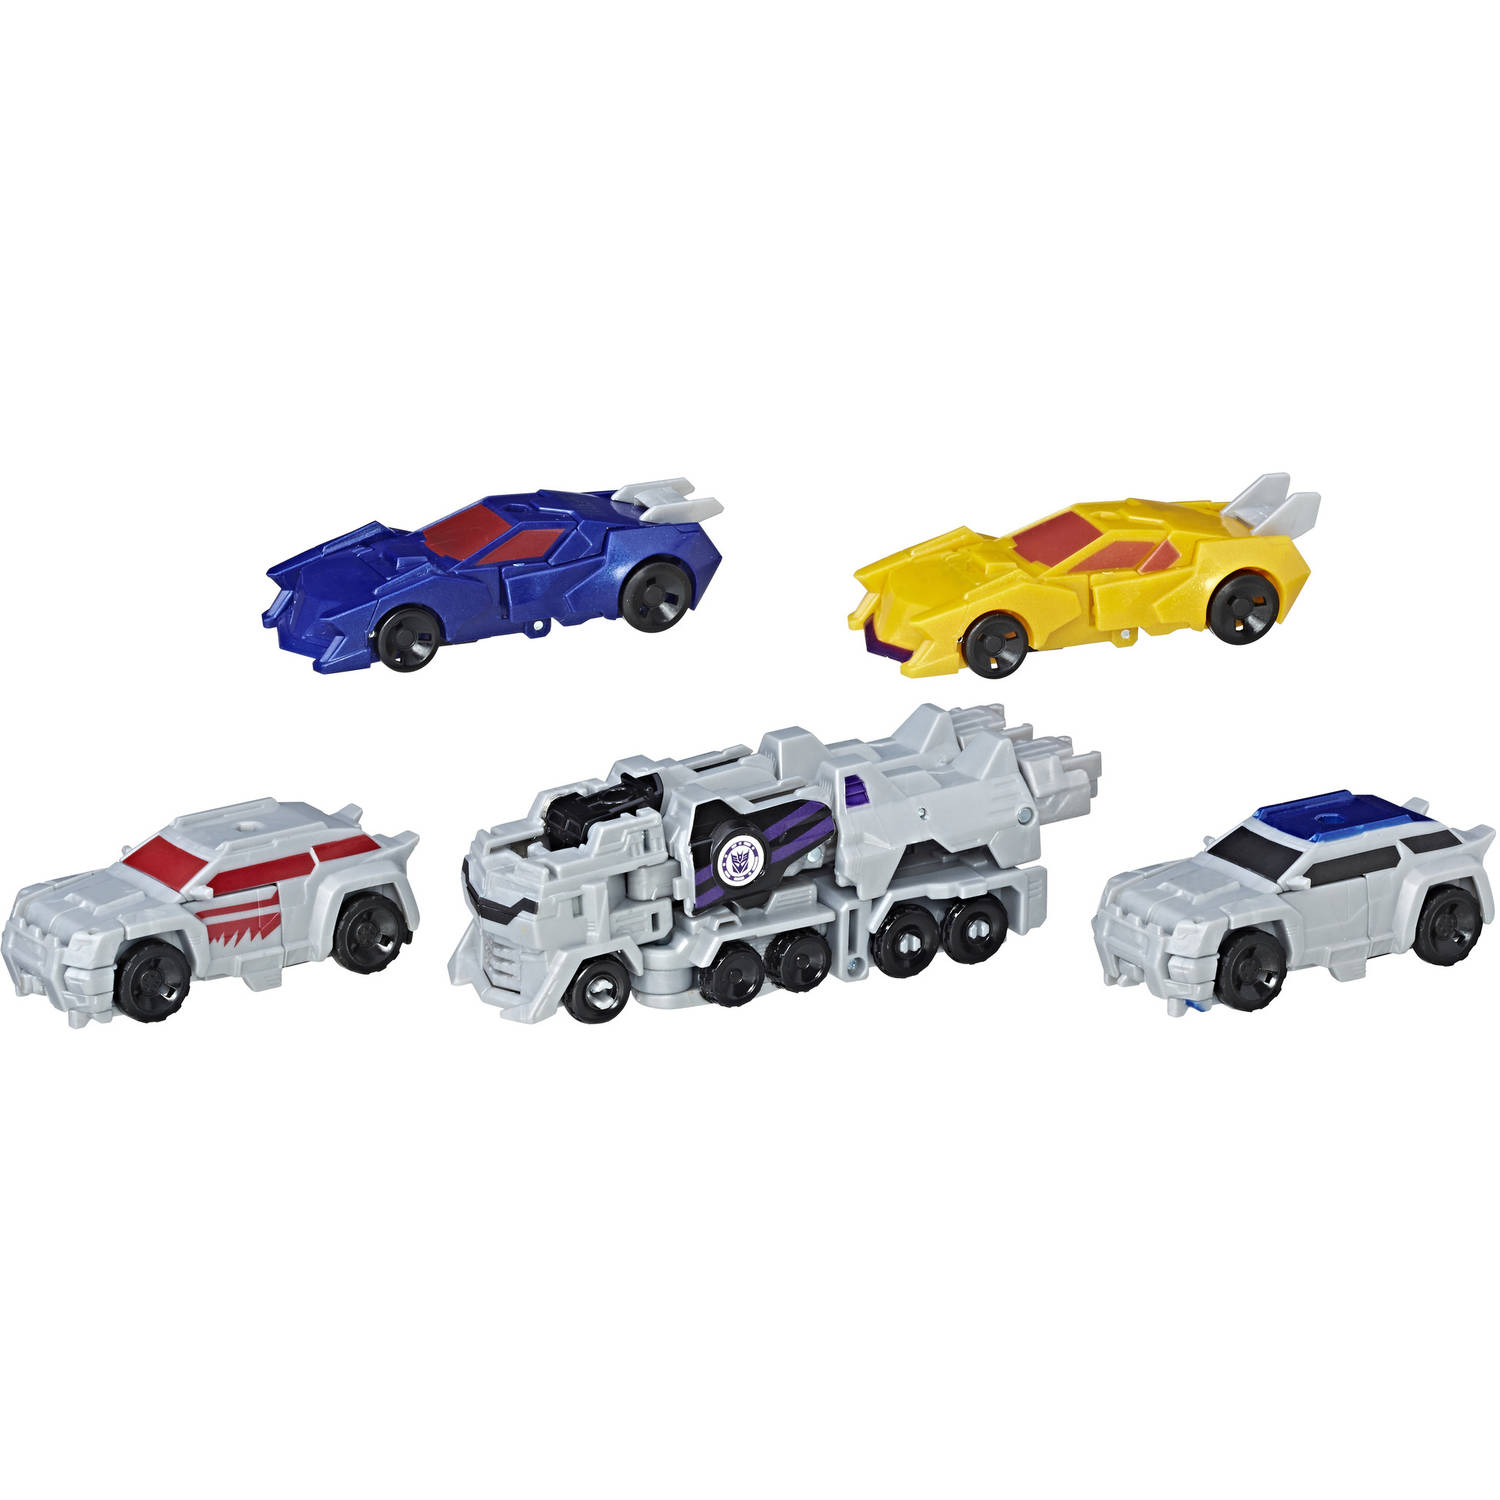 Transformers: Robots in Disguise Combiner Force Team Combiner Menasor by Hasbro